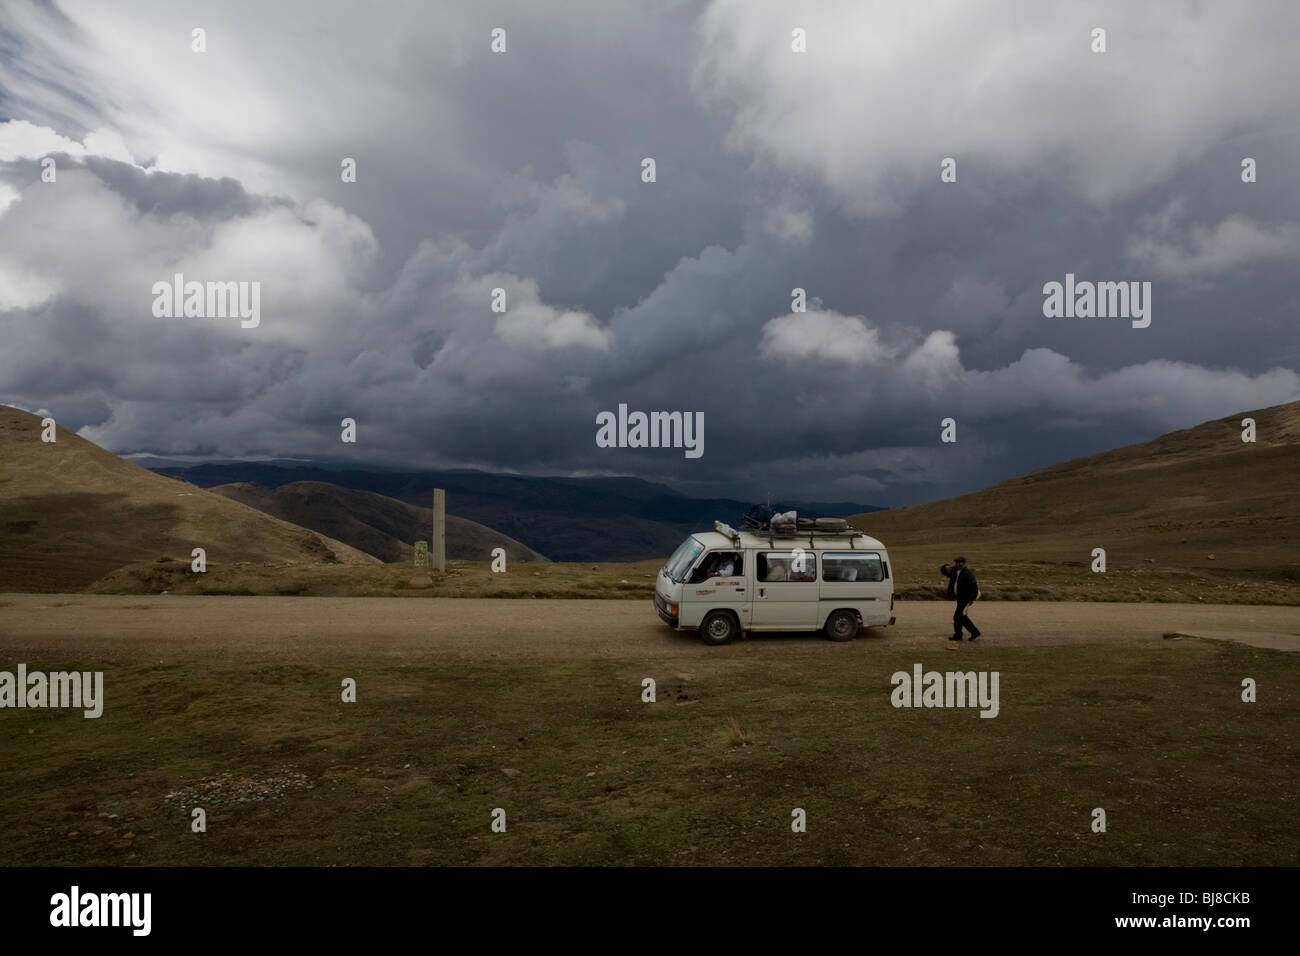 Minivan pit stop in bolivian mountains under dark clouds - Stock Image